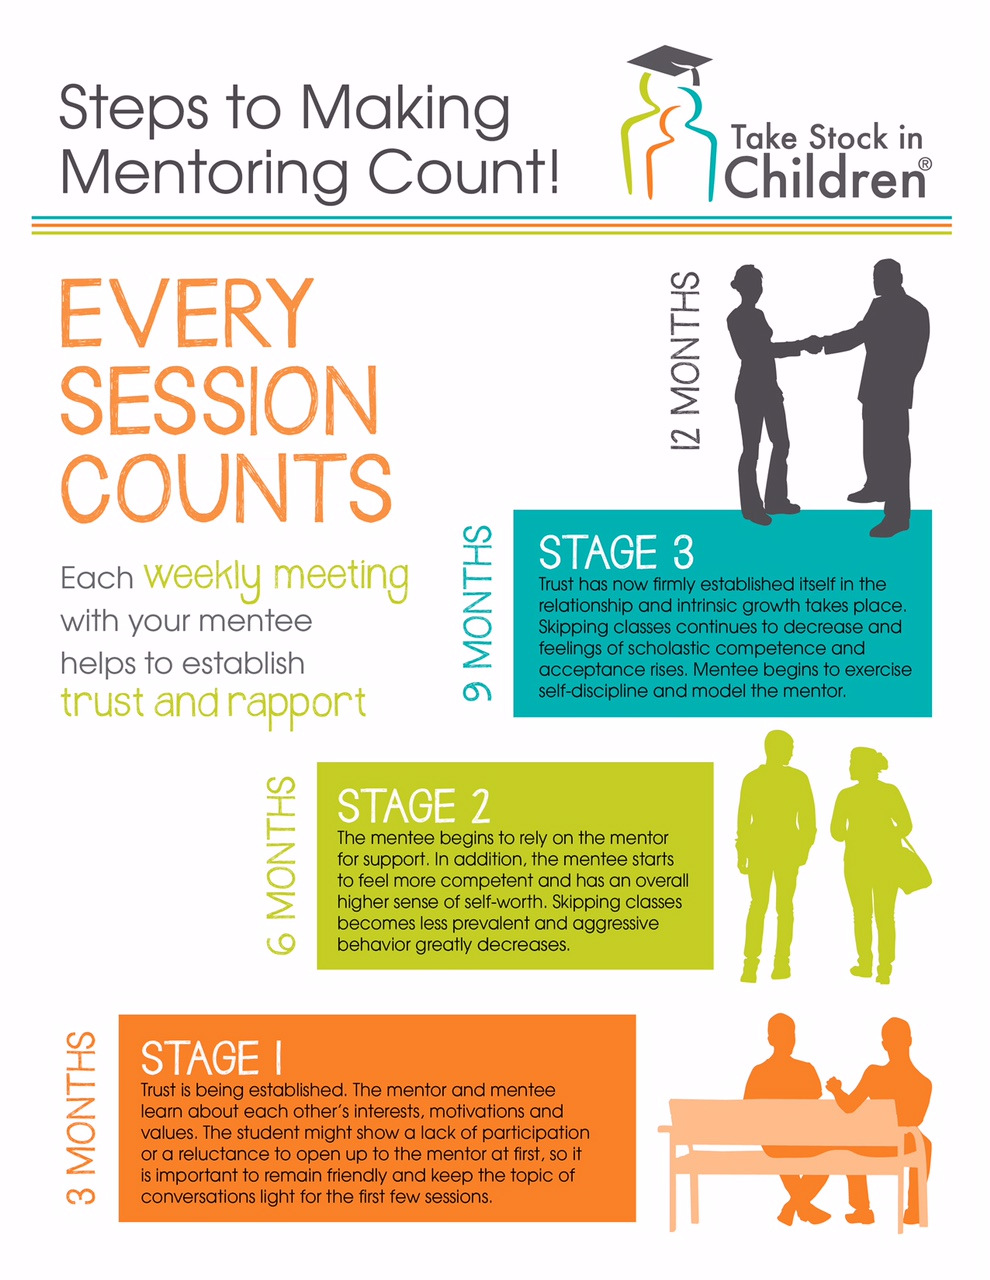 Steps to Making Mentoring Count